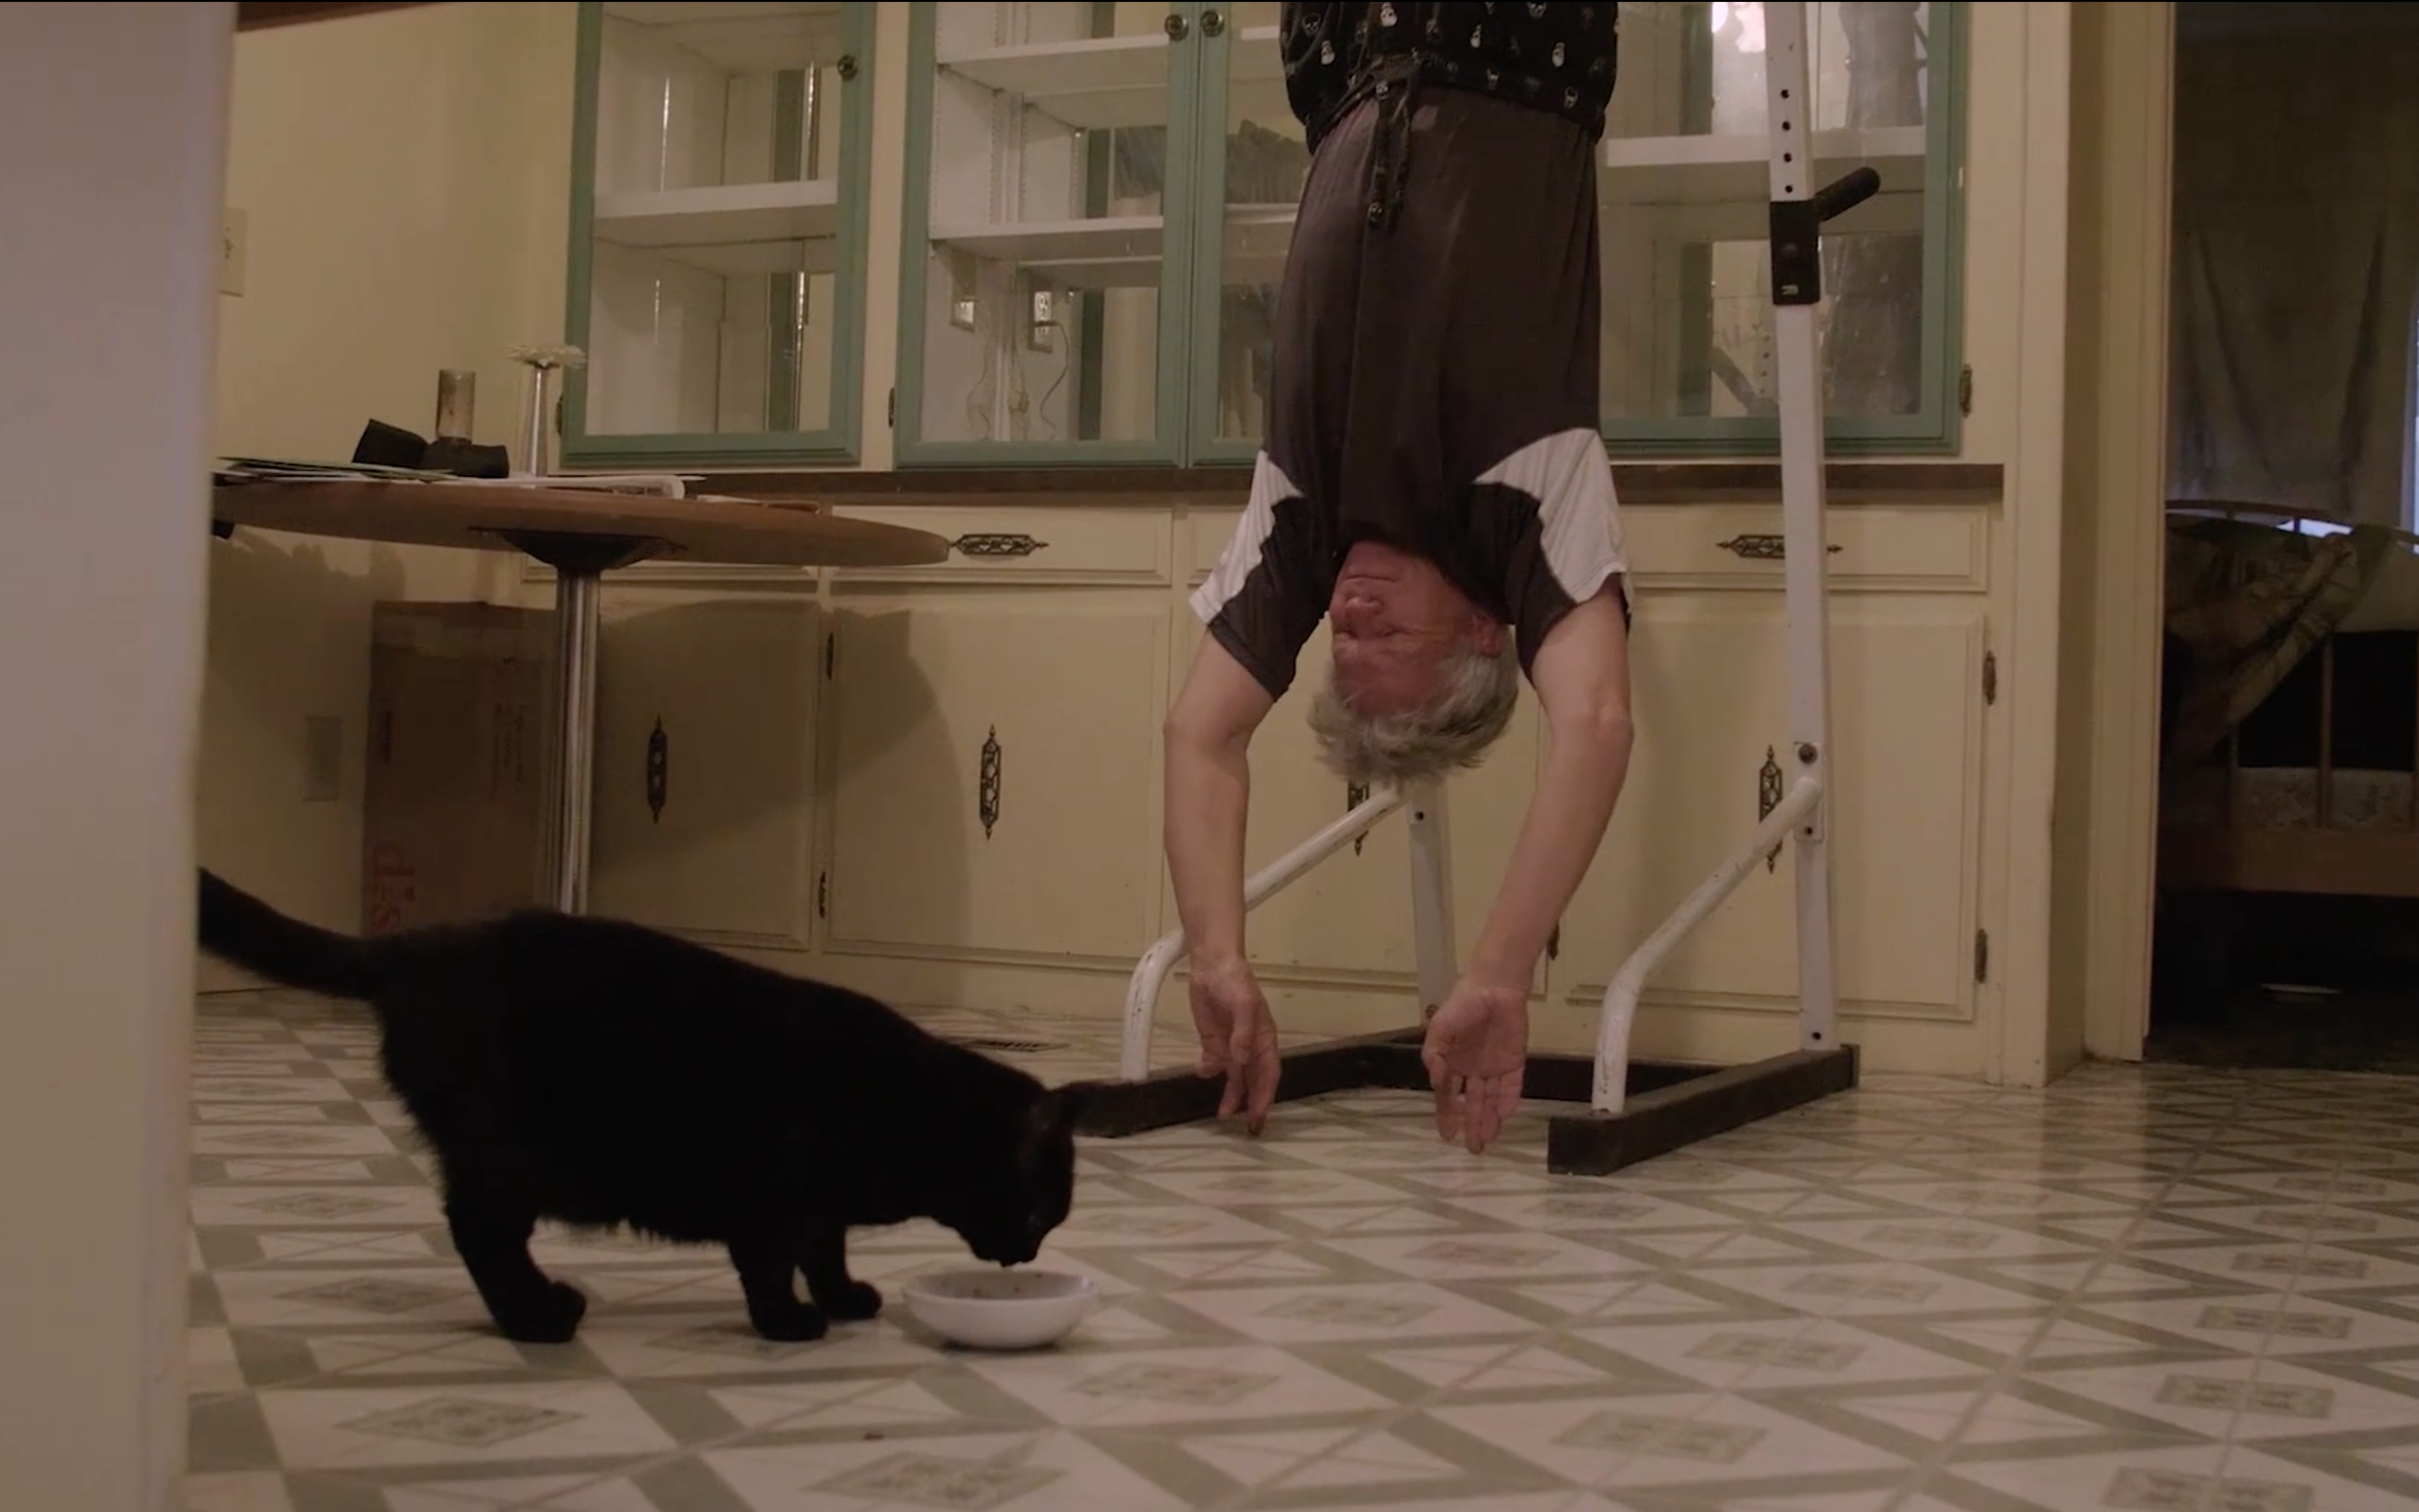 'Mad Mike' hangs inverted during his morning routine as Halley the cat eats her breakfast.